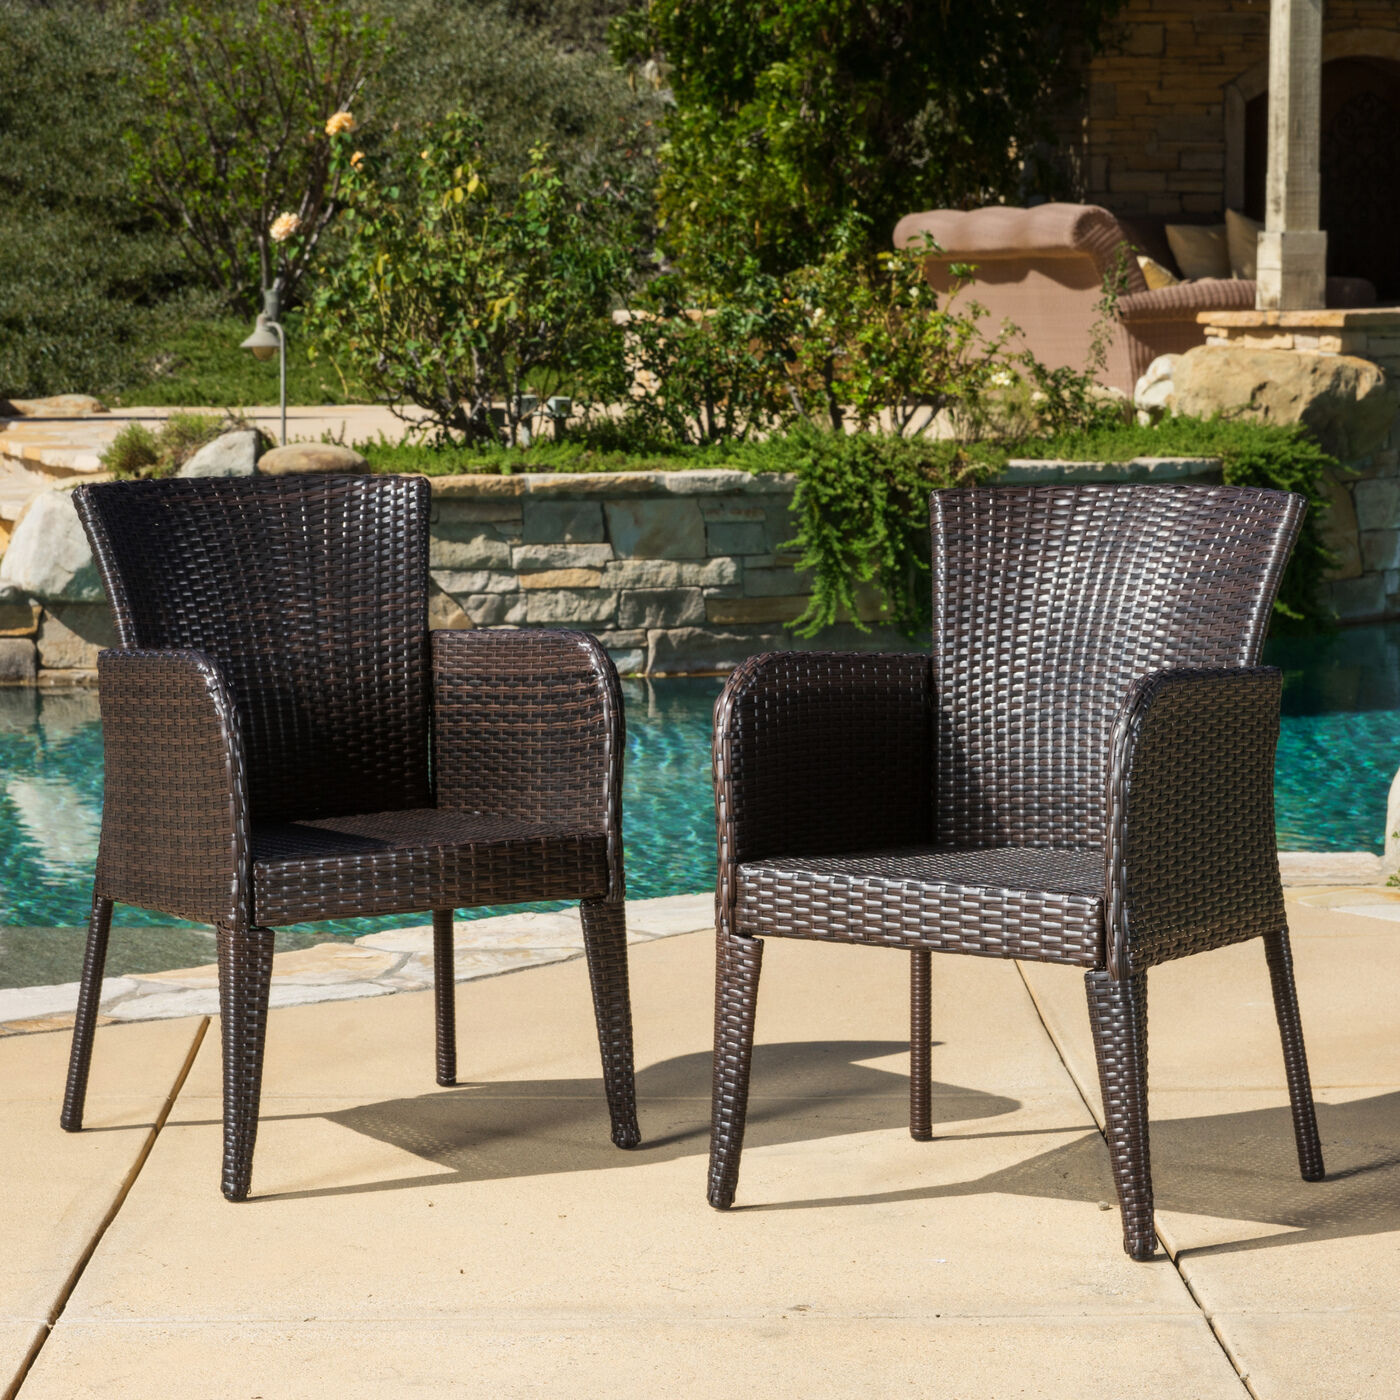 Outdoor Patio Set Modern Rattan Bistro Contemporary Wicker Furniture 3 Piece New Ebay